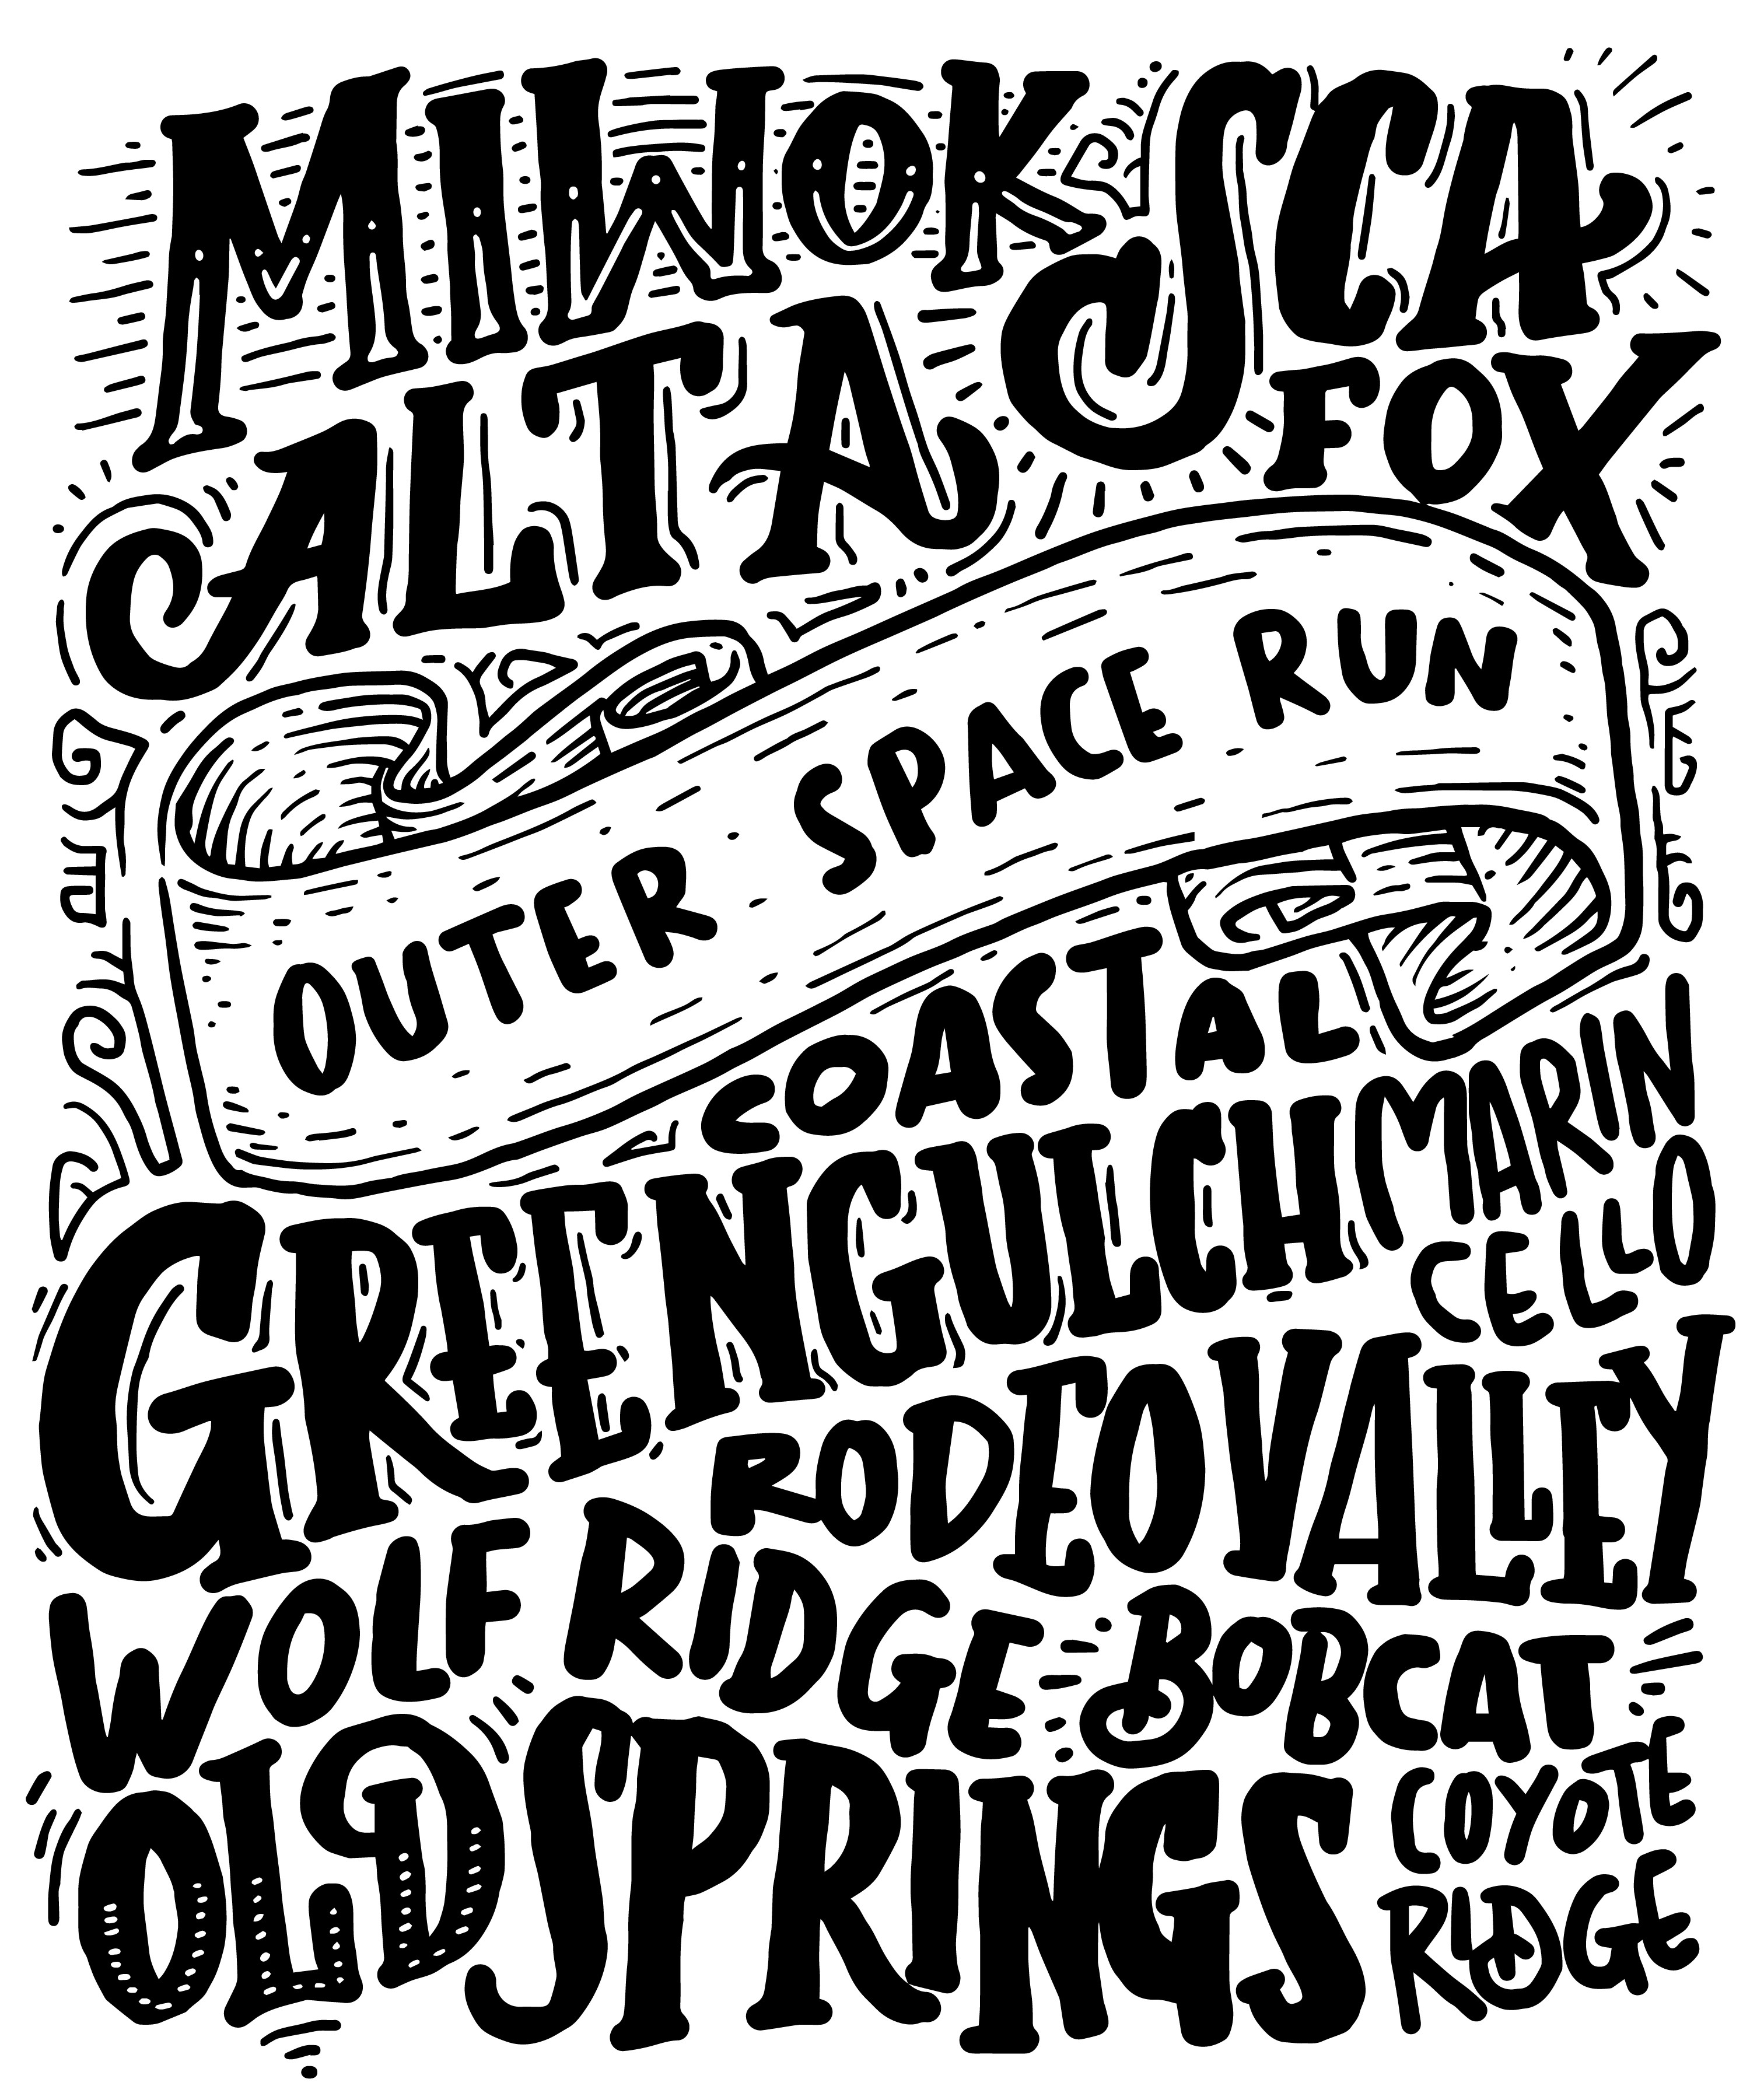 Trail Names shirt concept for Outer Space Run